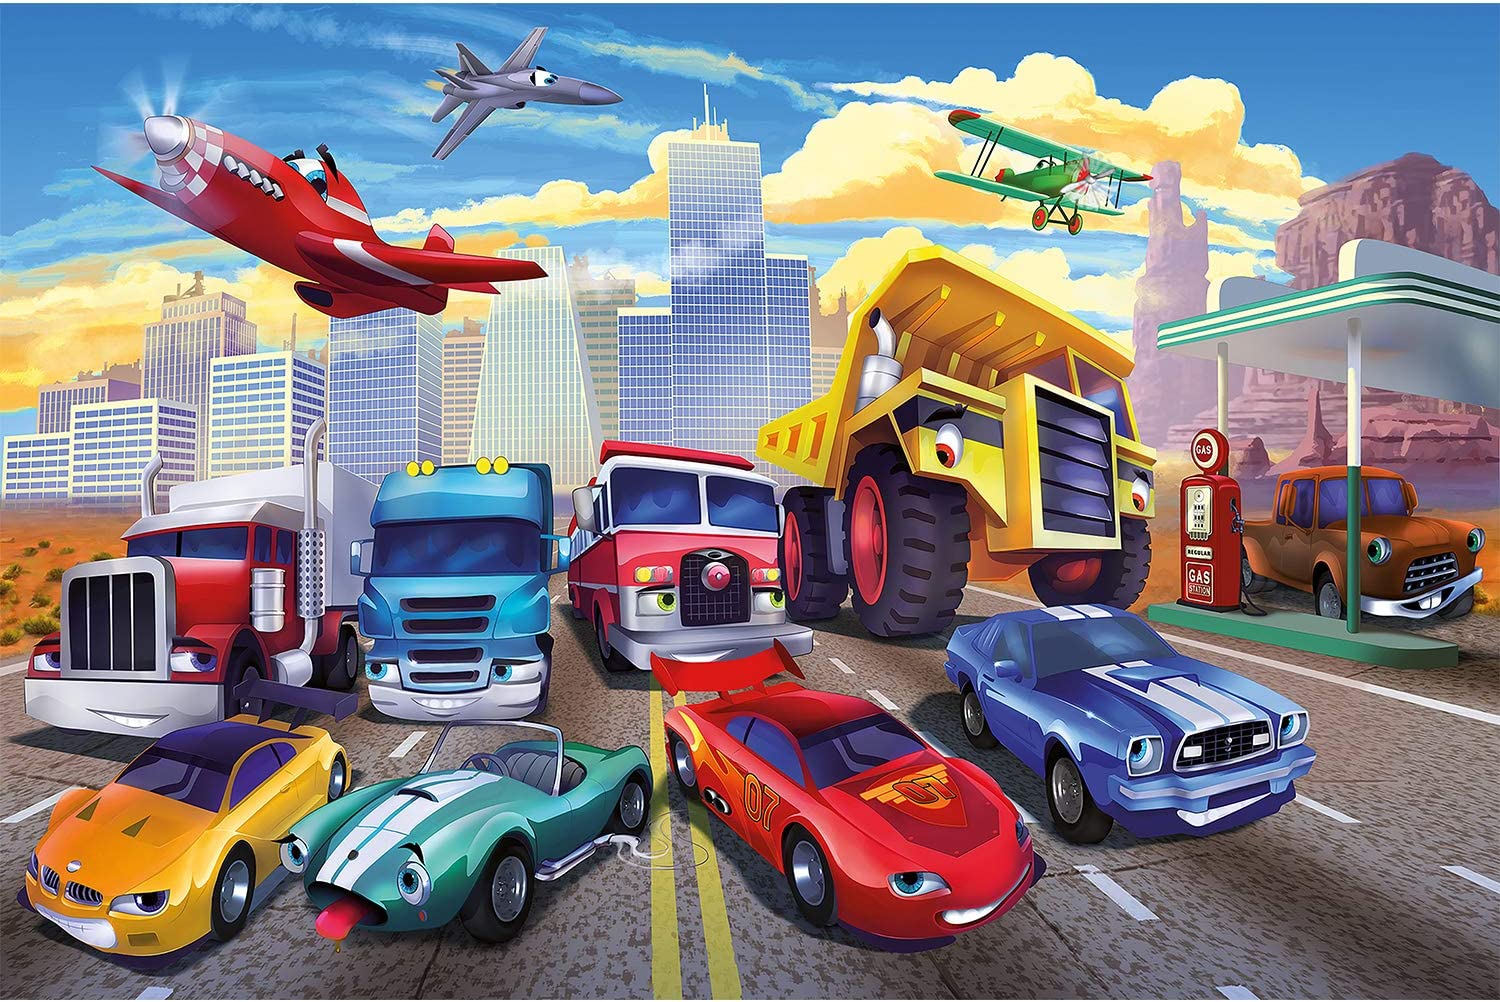 Amazon.com: GREAT ART Kid's Room Nursery Photo Wallpaper – Racing Cars –  Picture Decoration Airplane Firefighters Vehicle Cabrio Comic Style  Adventure Image Decor Wall Mural (82.7x55.1in - 210x140cm): Home Improvement